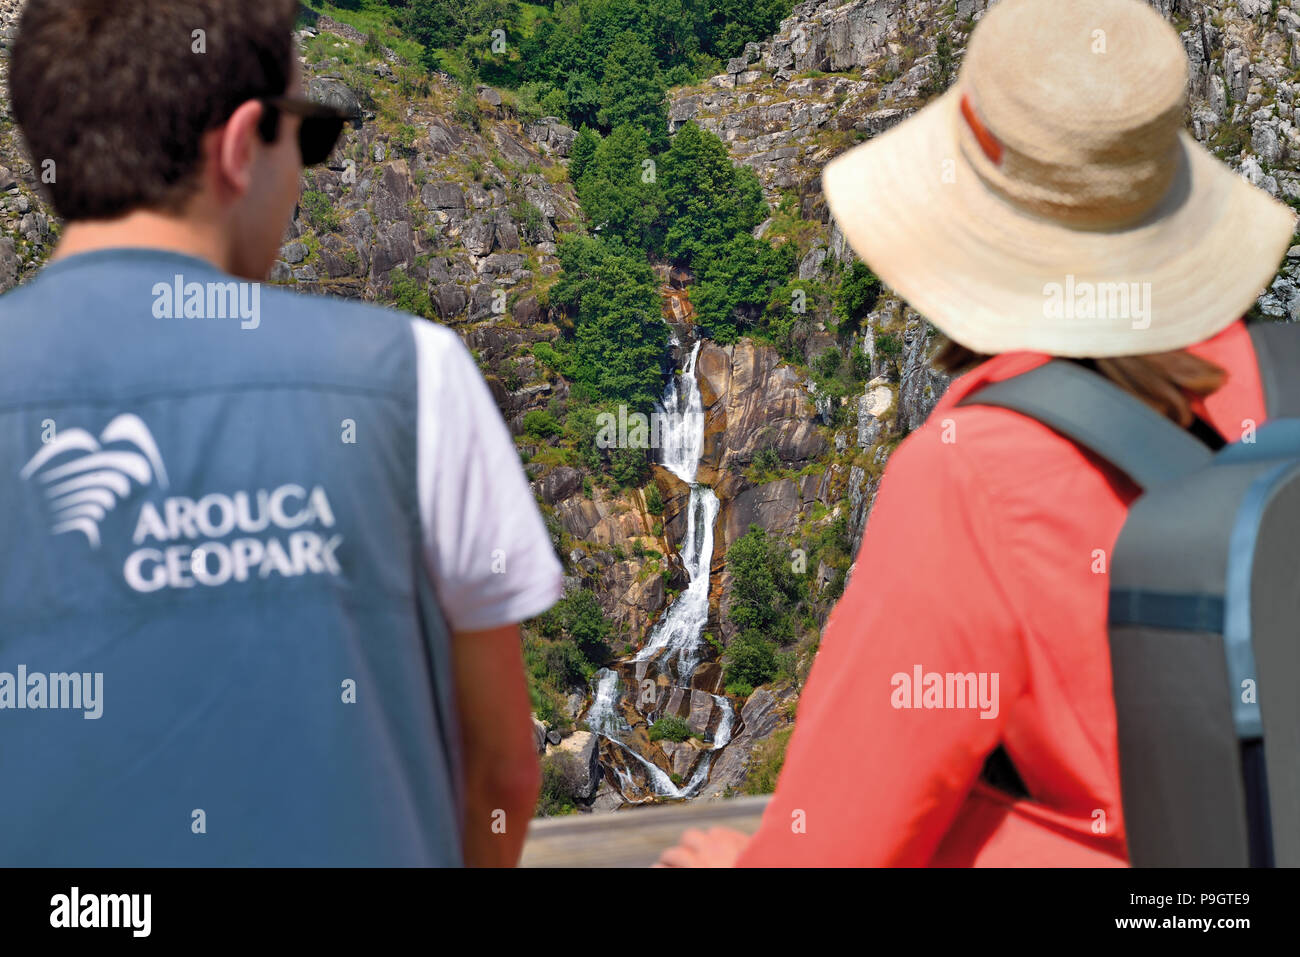 Arouca Geopark Guide and tourist looking to waterfall from Passadicos do Paiva - Stock Image